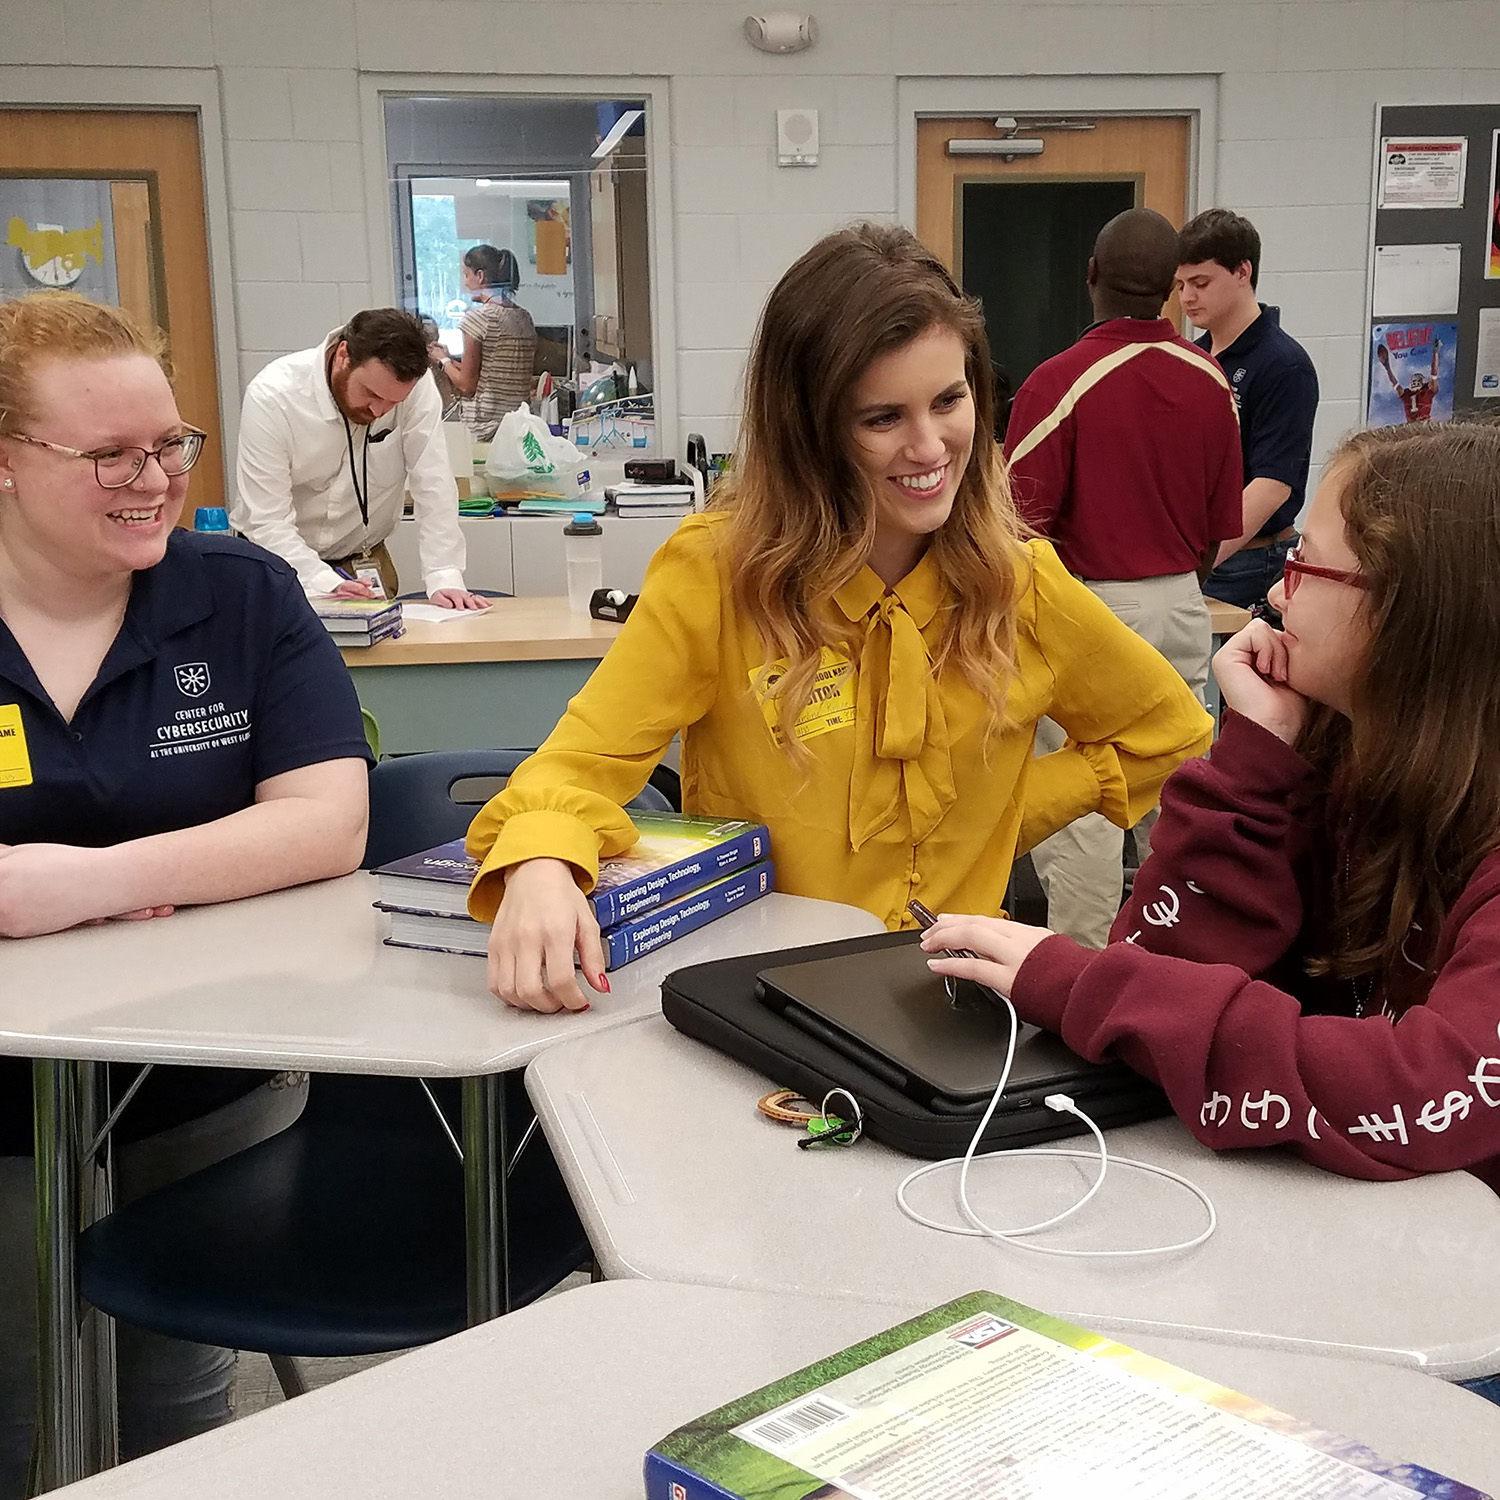 Cybersecurity ambassadors Megan Mortonand Caroline Krouse answer cybersecurity questions from a Beulah Middle School student.